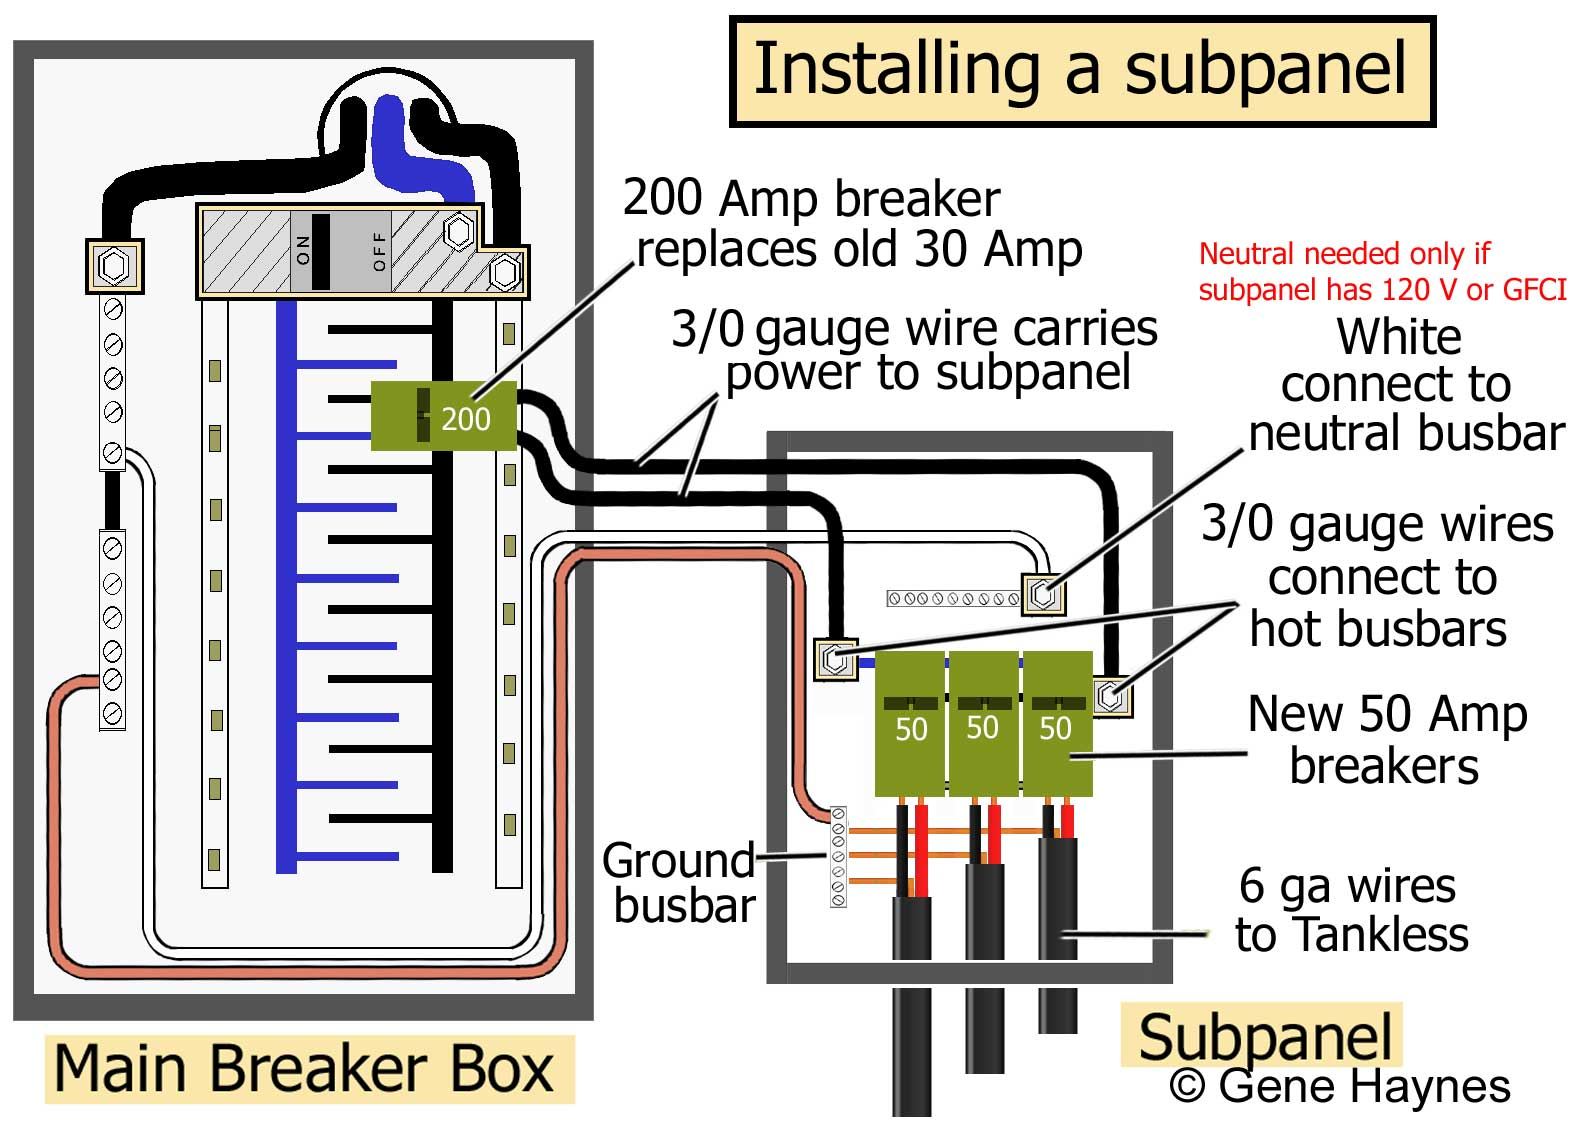 How to install a subpanel how to install main lug 150 amp breaker uses 20 wire neutral wire needed only if subpanel has 120volt breakers or gfci ground wire required for all installations greentooth Image collections